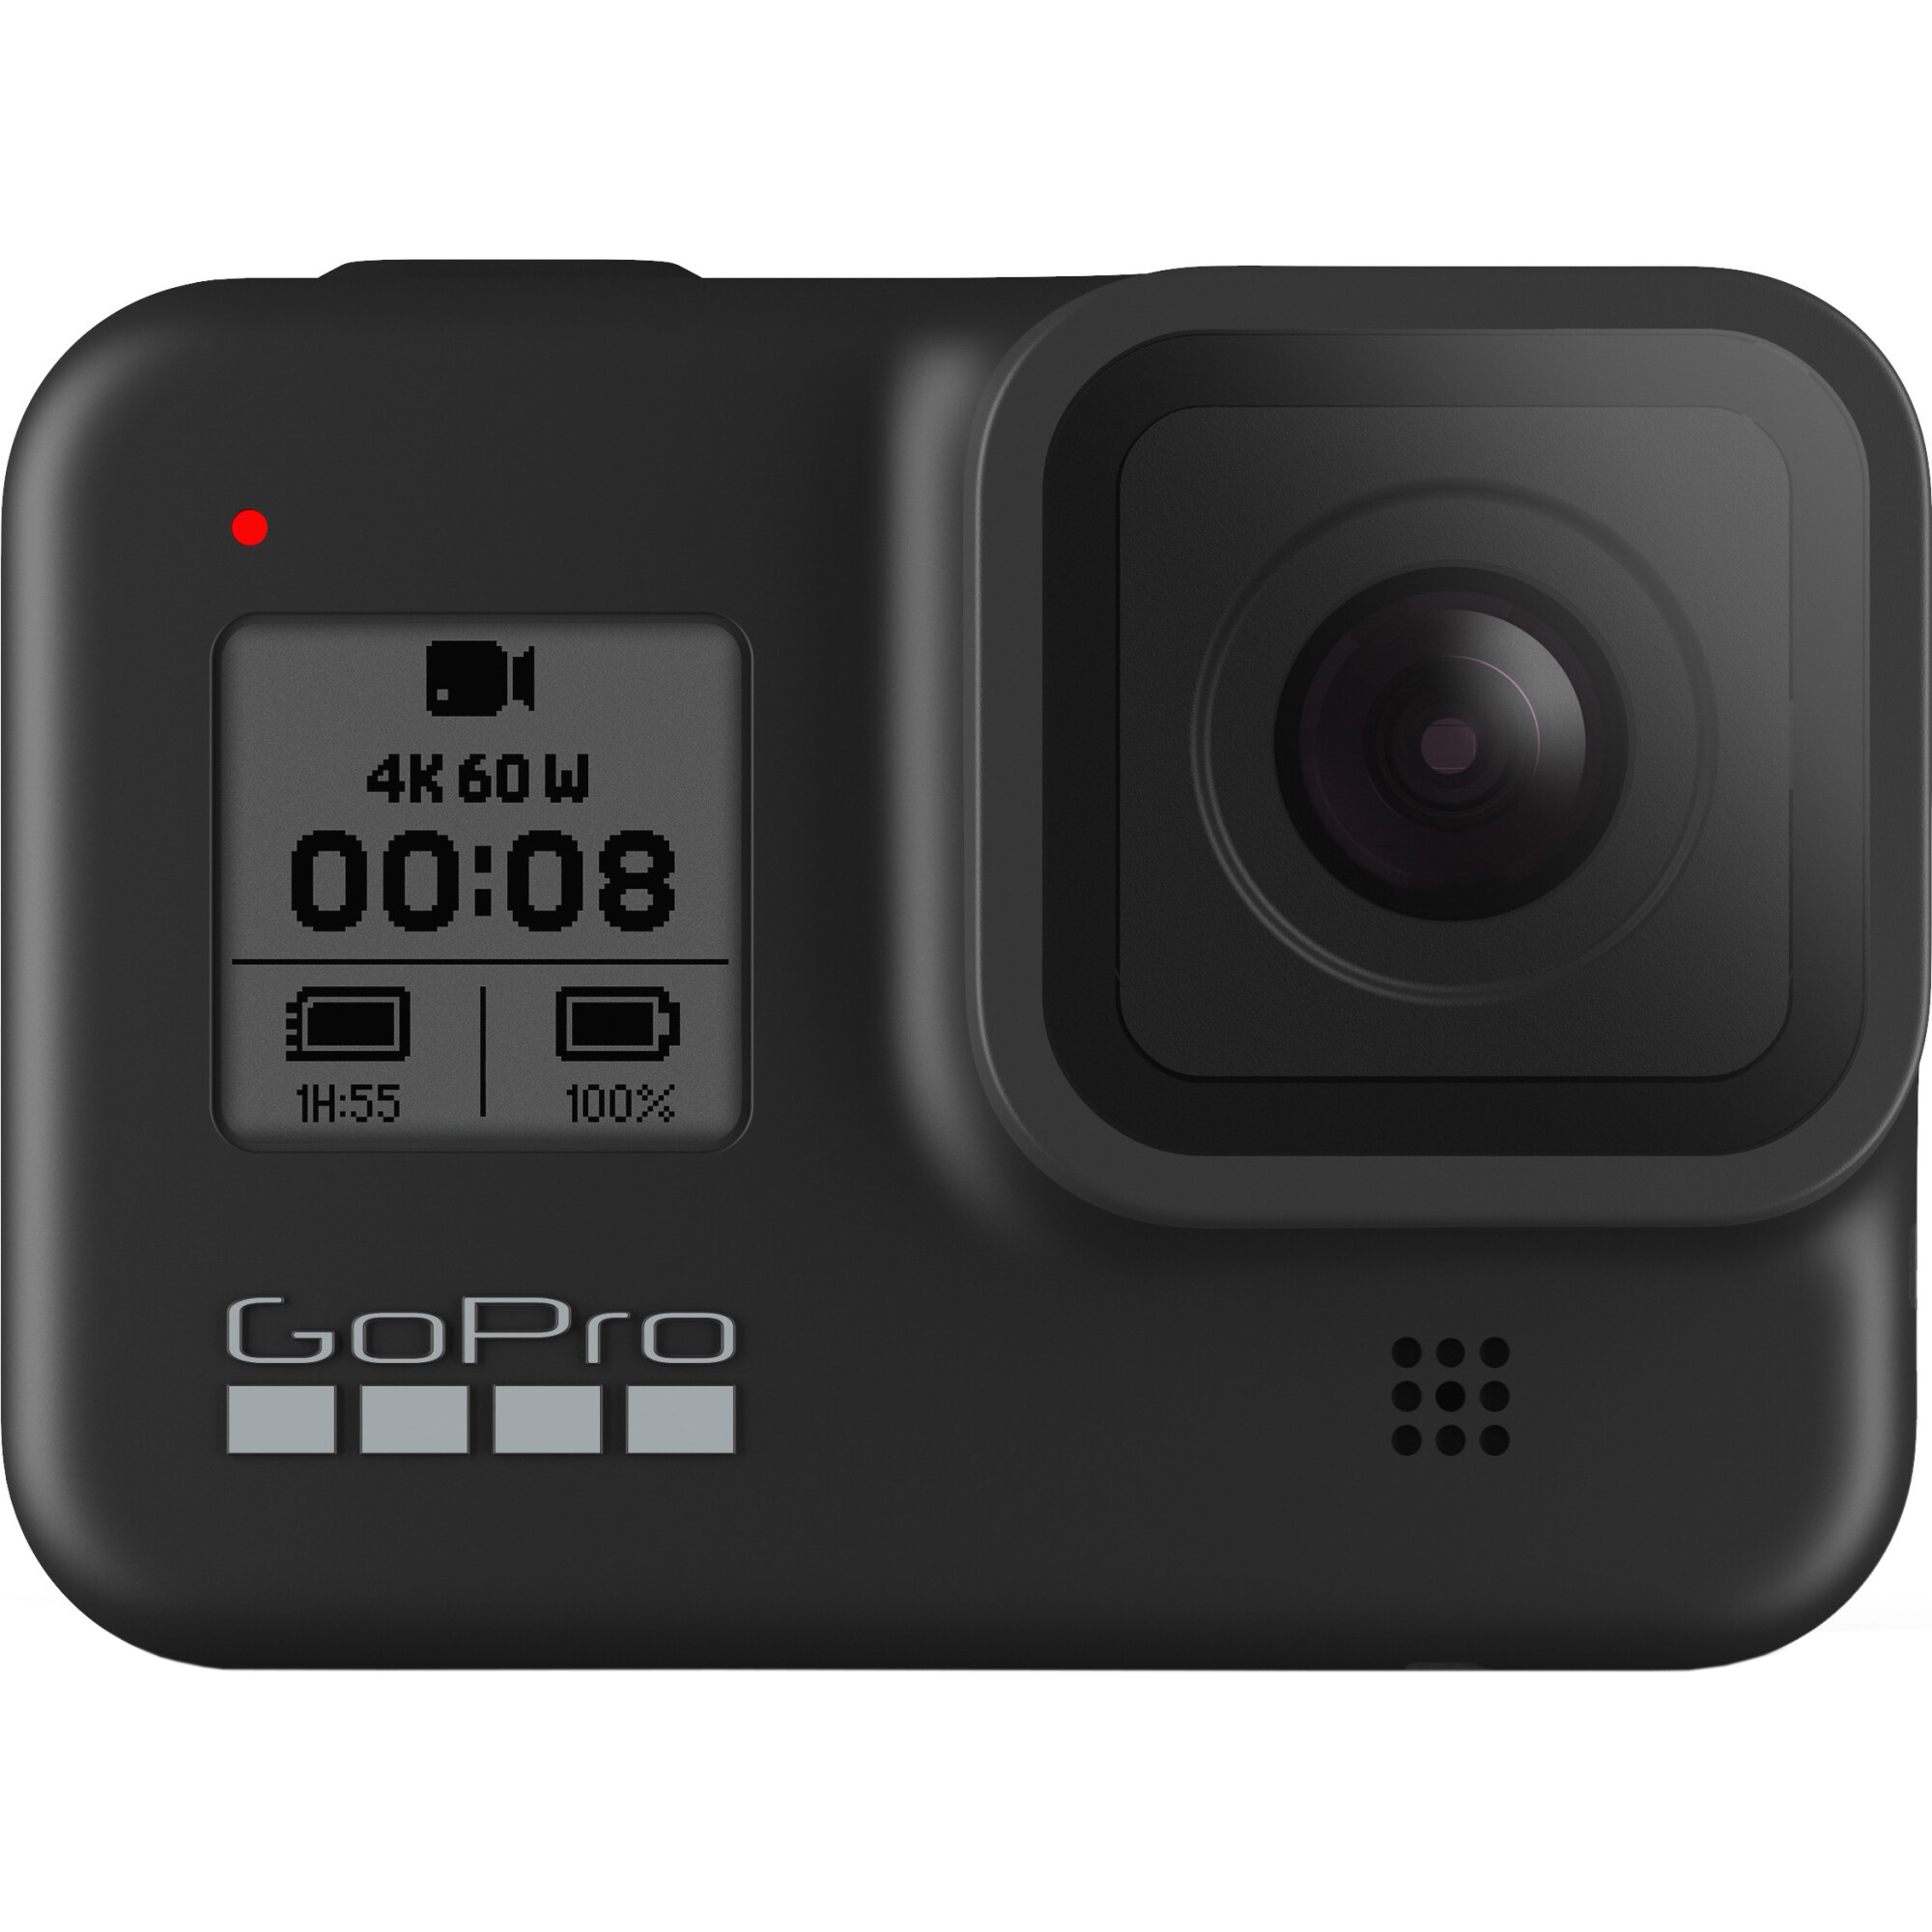 Экшн-камера GoPro HERO8 CHDHX-801-RW Black экшн камера gopro hero8 black edition chdhx 801 rw